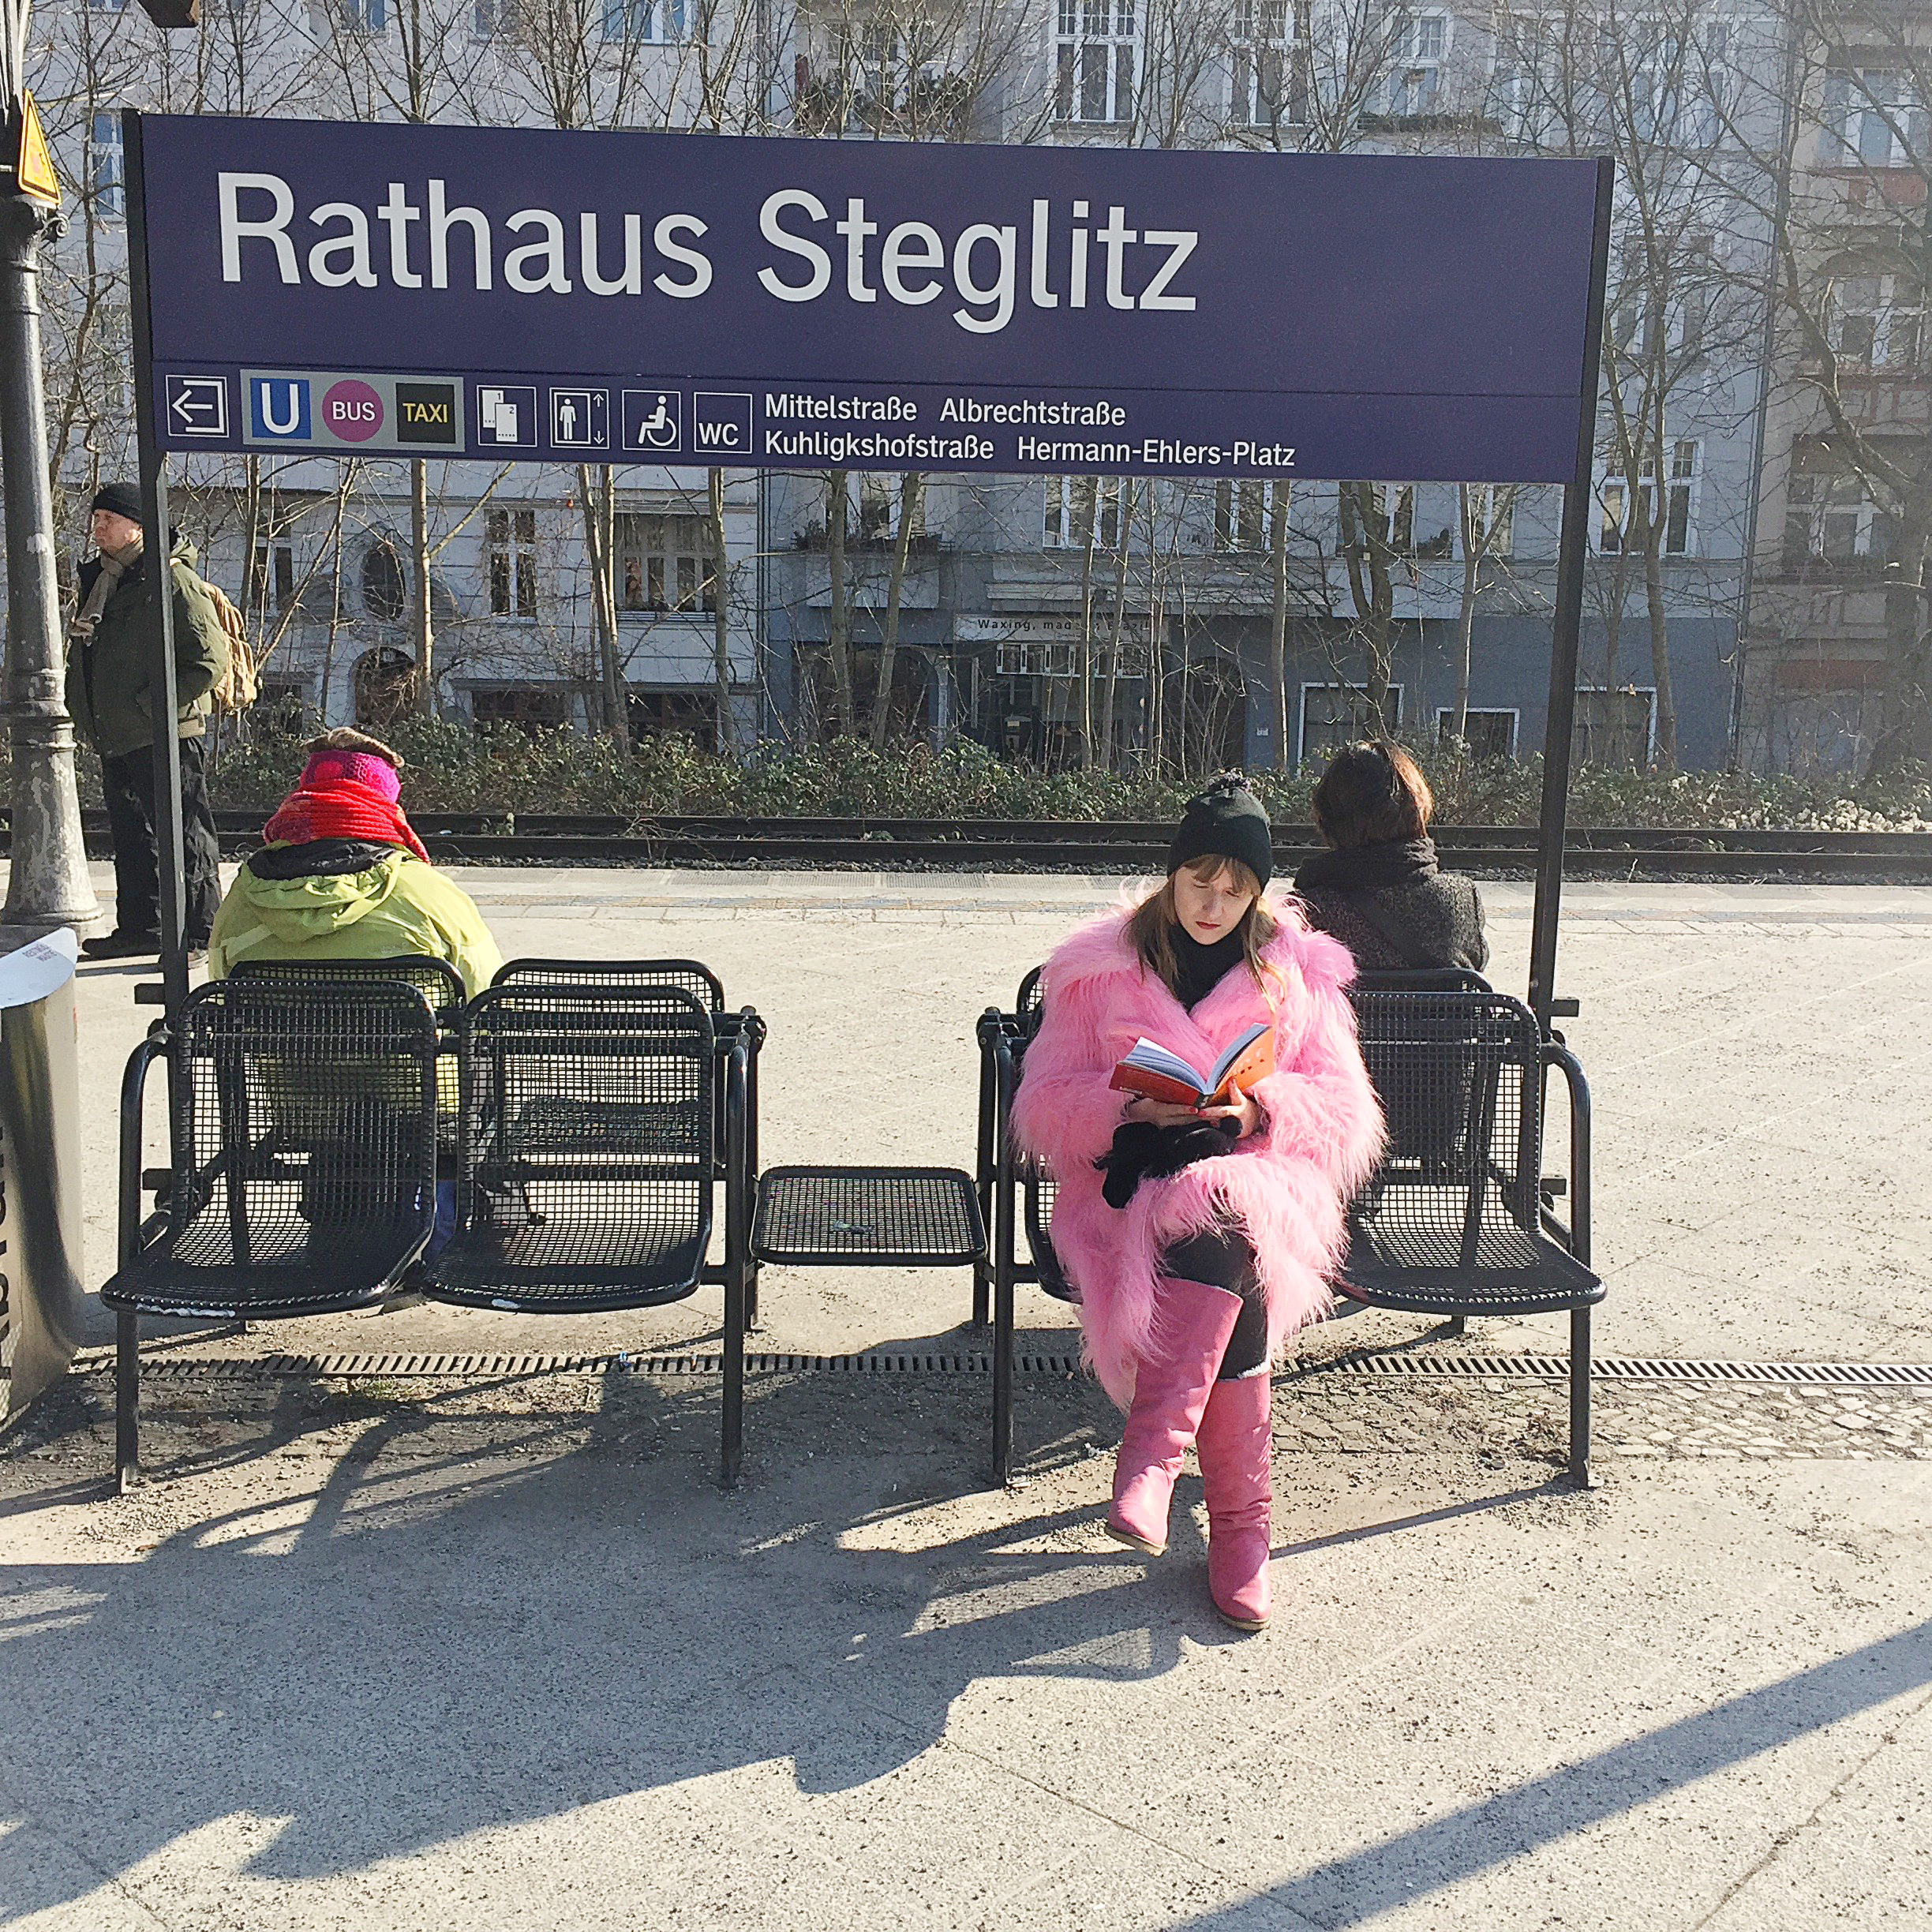 Our pink & fluffy trip to Berlin www.prettyugly.eu